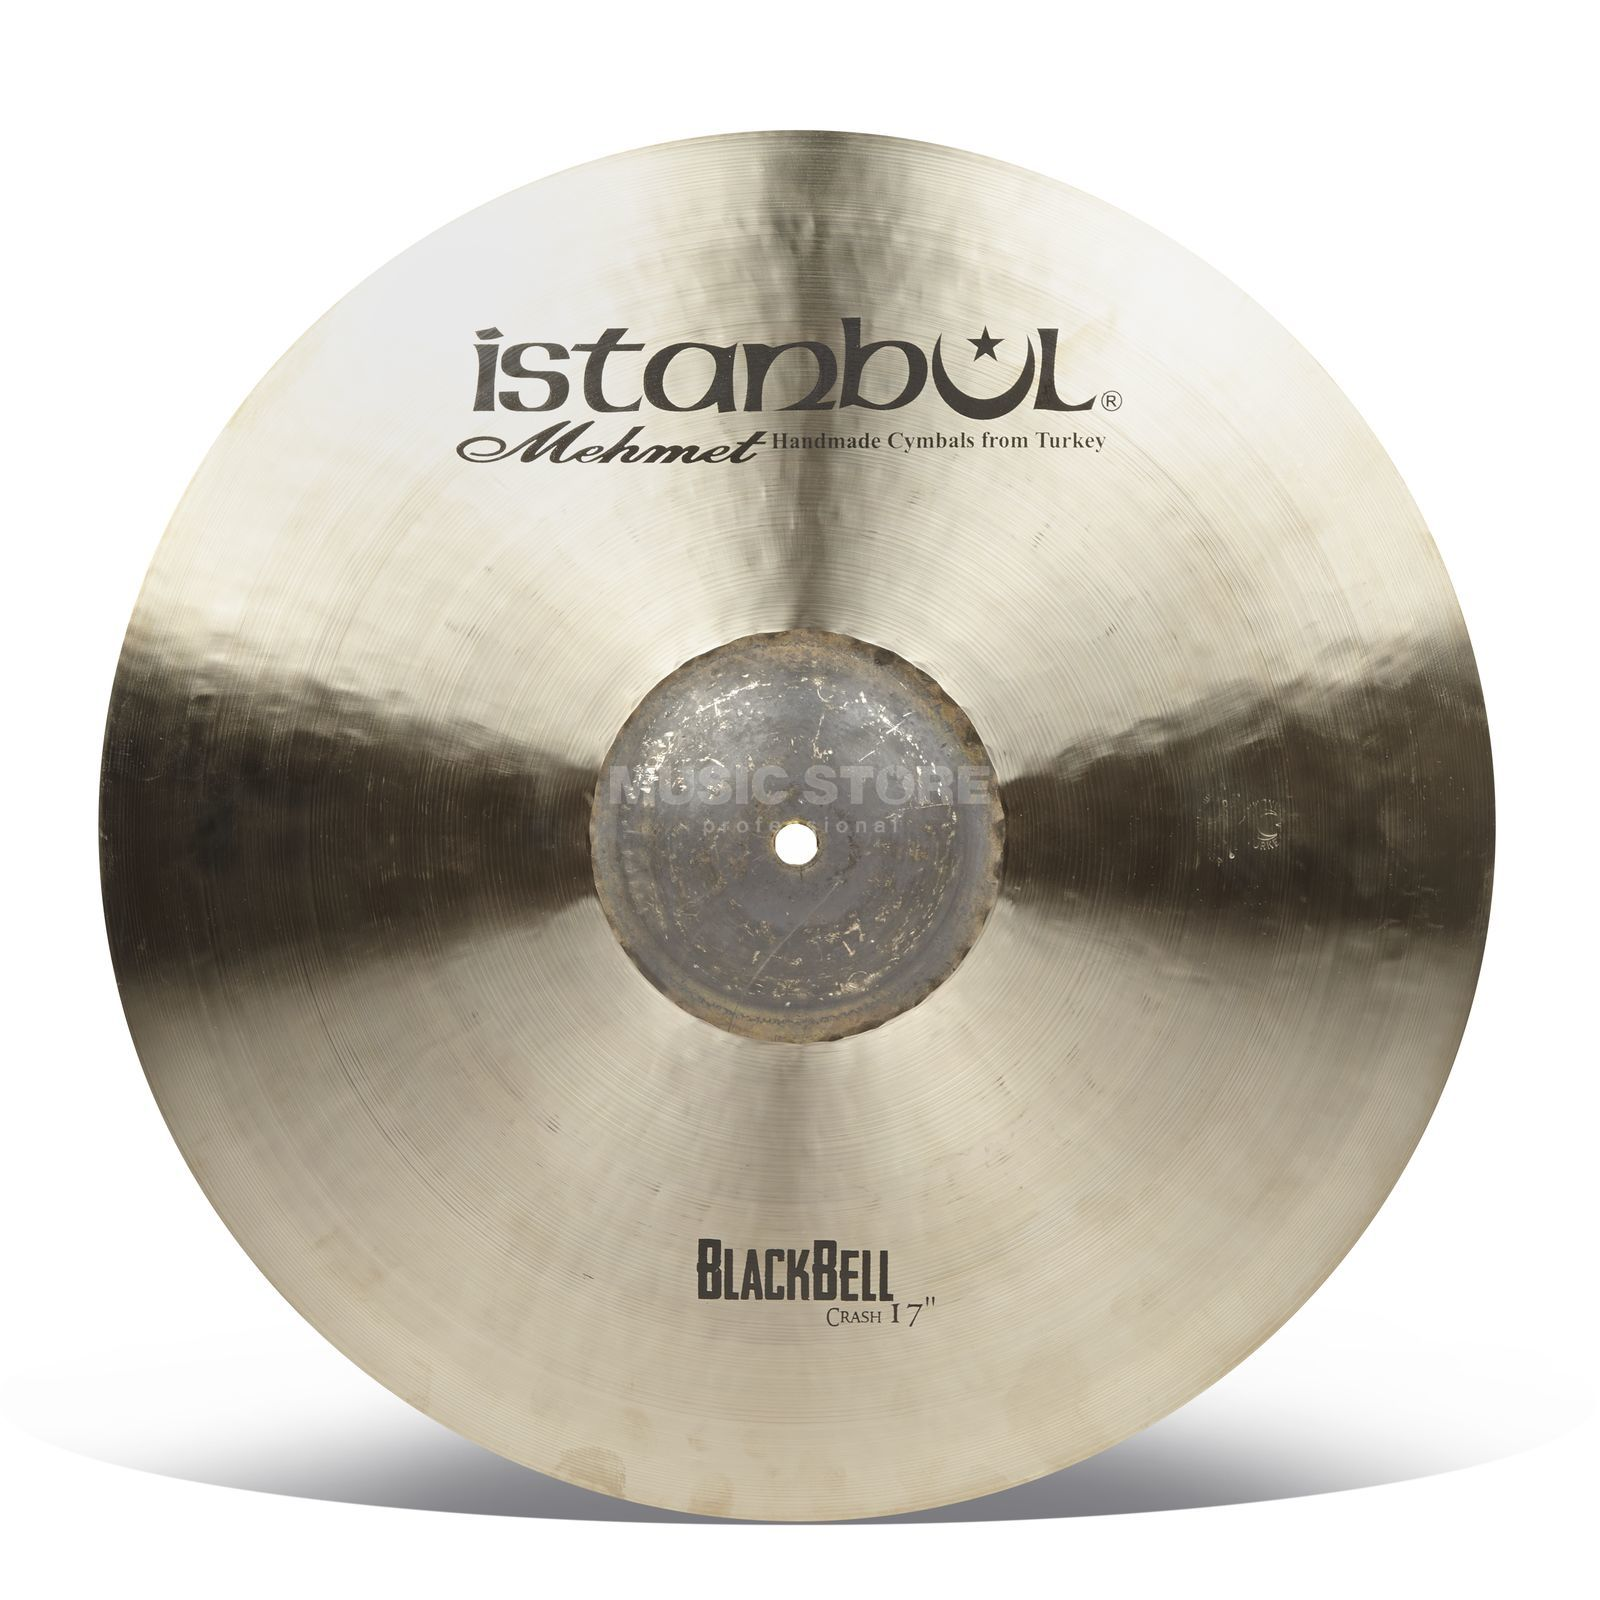 "Istanbul BB-C17 Black Bell Crash 17"" Product Image"